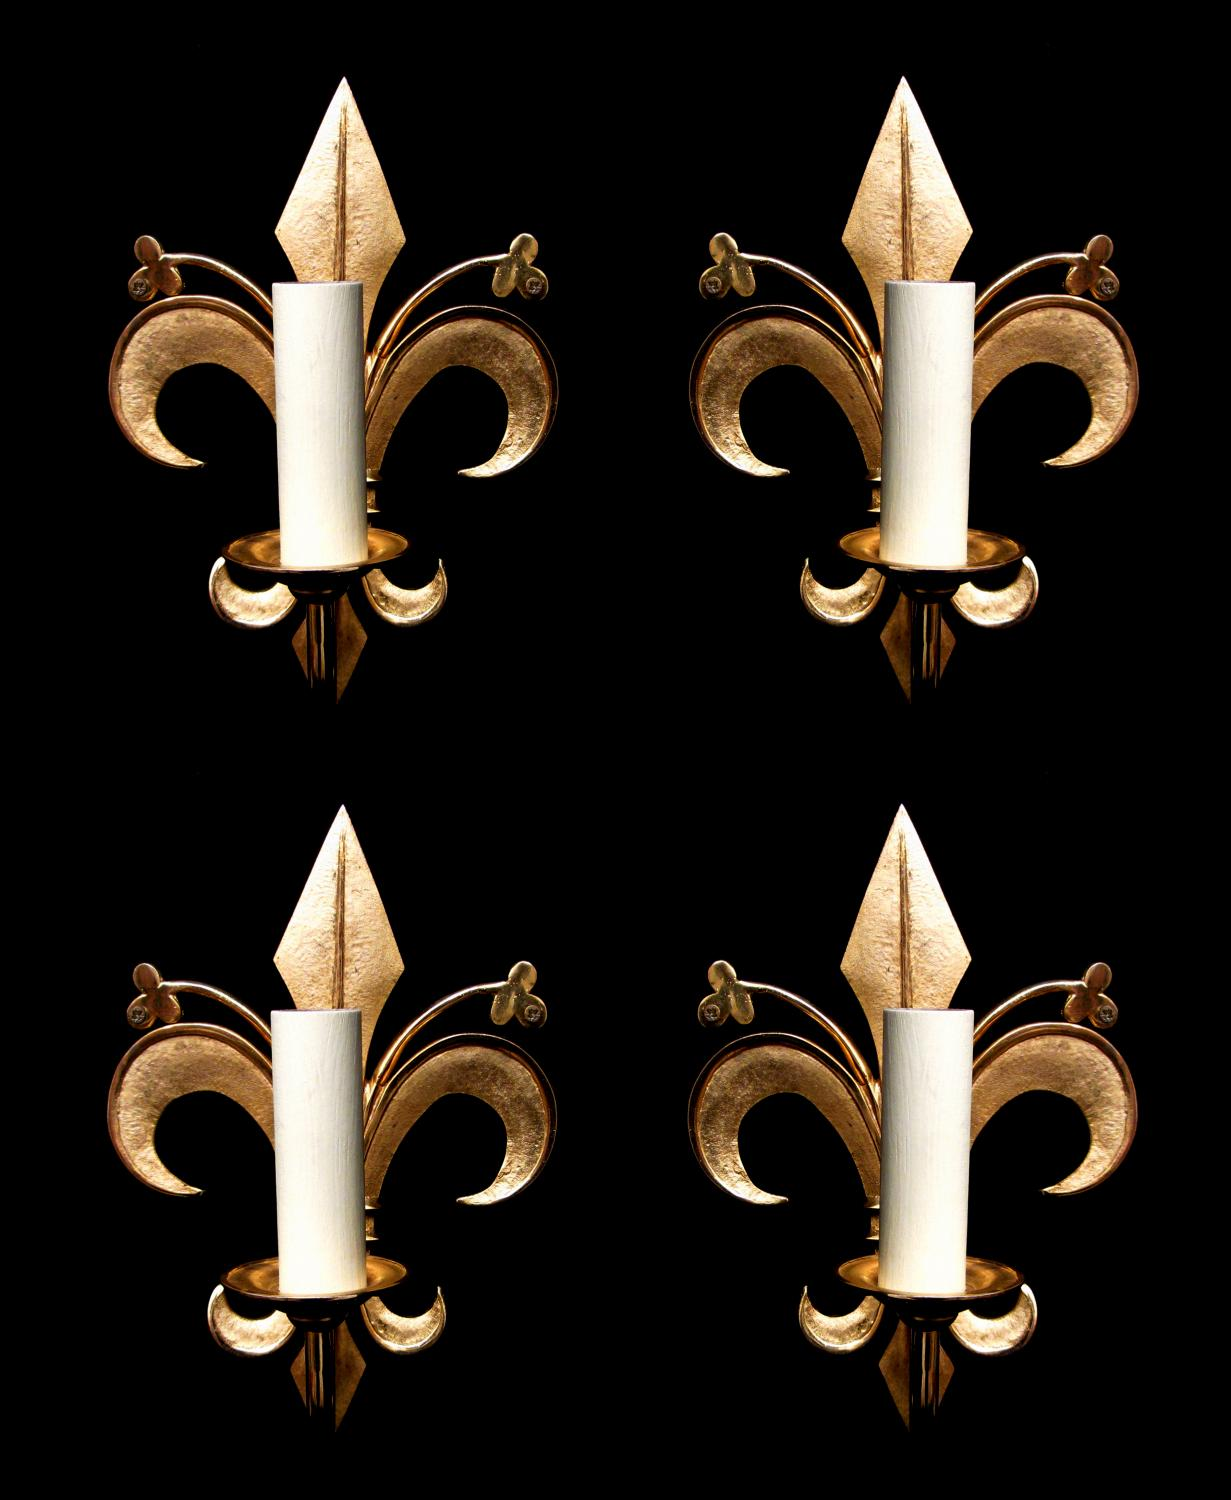 A set of 4 fleur de lis shaped wall lights